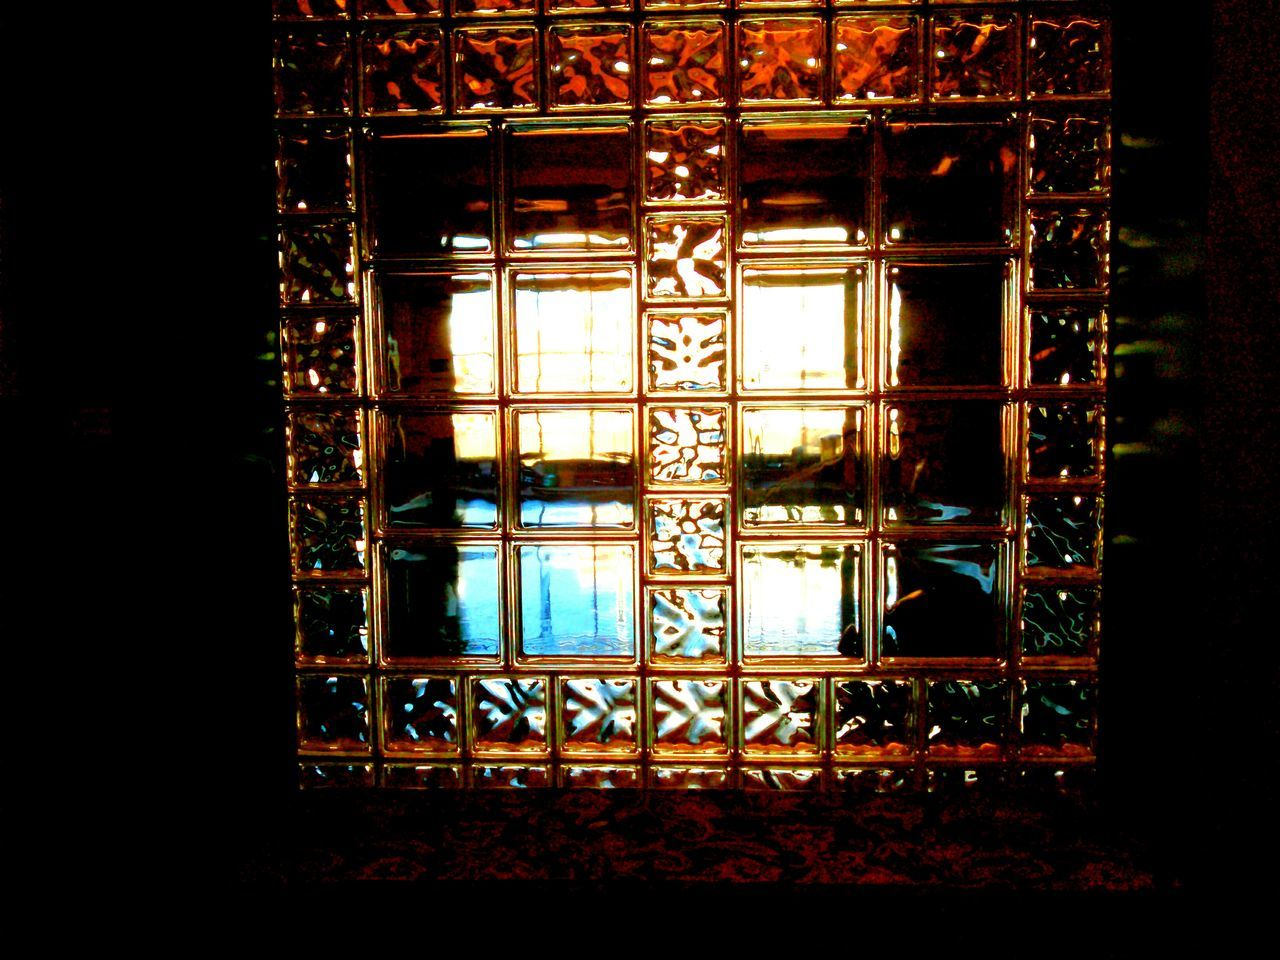 no people, indoors, window, built structure, architecture, illuminated, entry, night, close-up